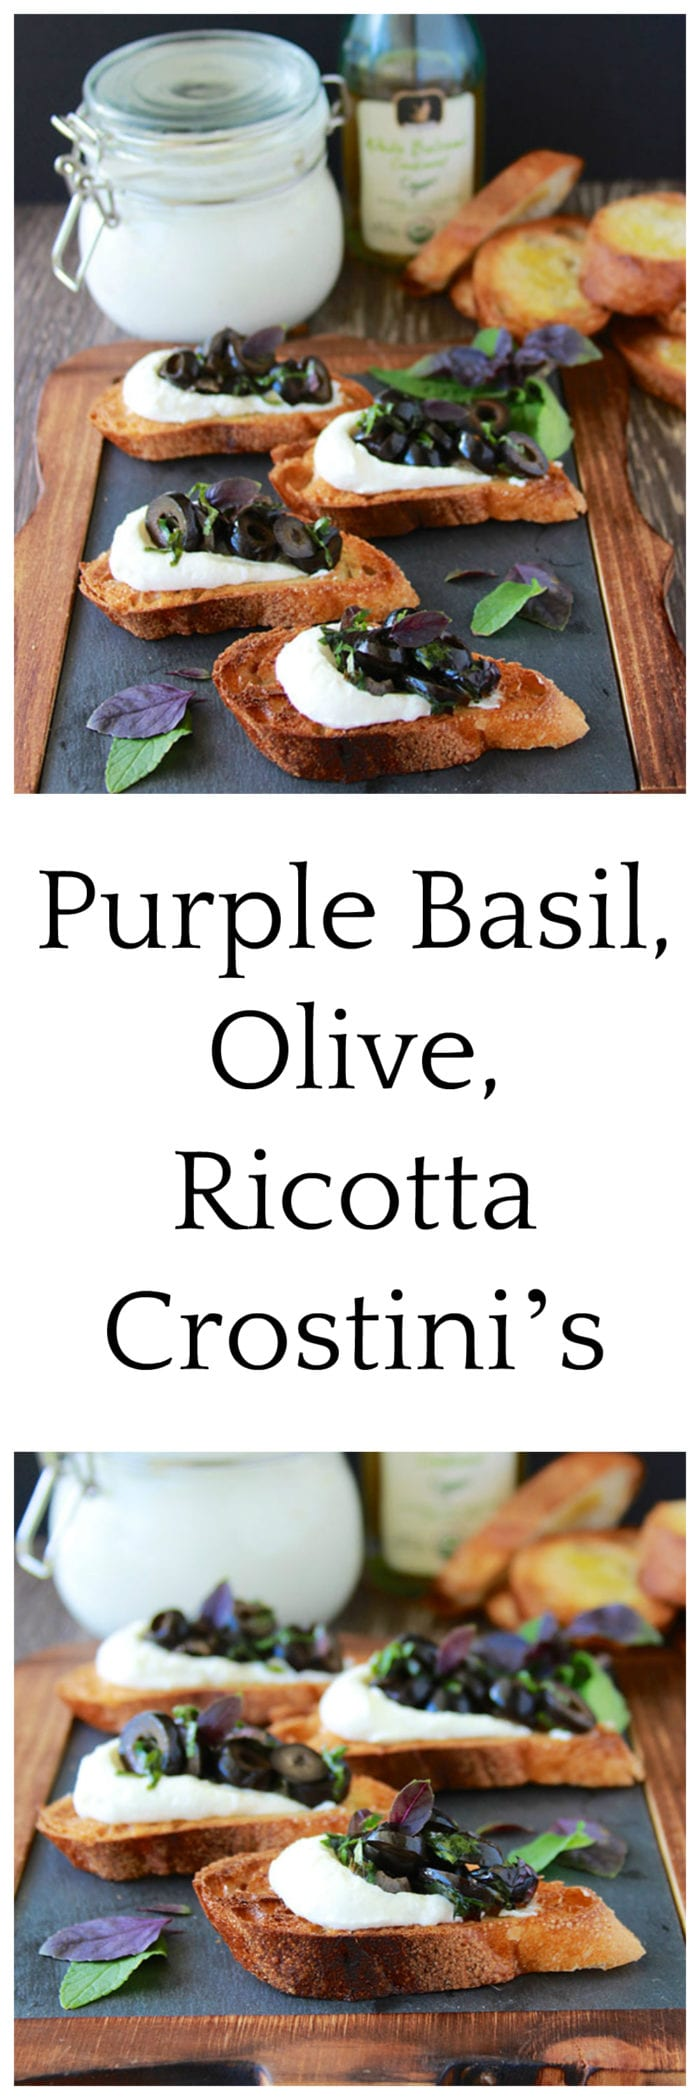 Purple Basil, Olive, Ricotta Crostini's will make you the talk of the town, they'll be your favorite go-to appetizer!!www.cookingwithruthie.com